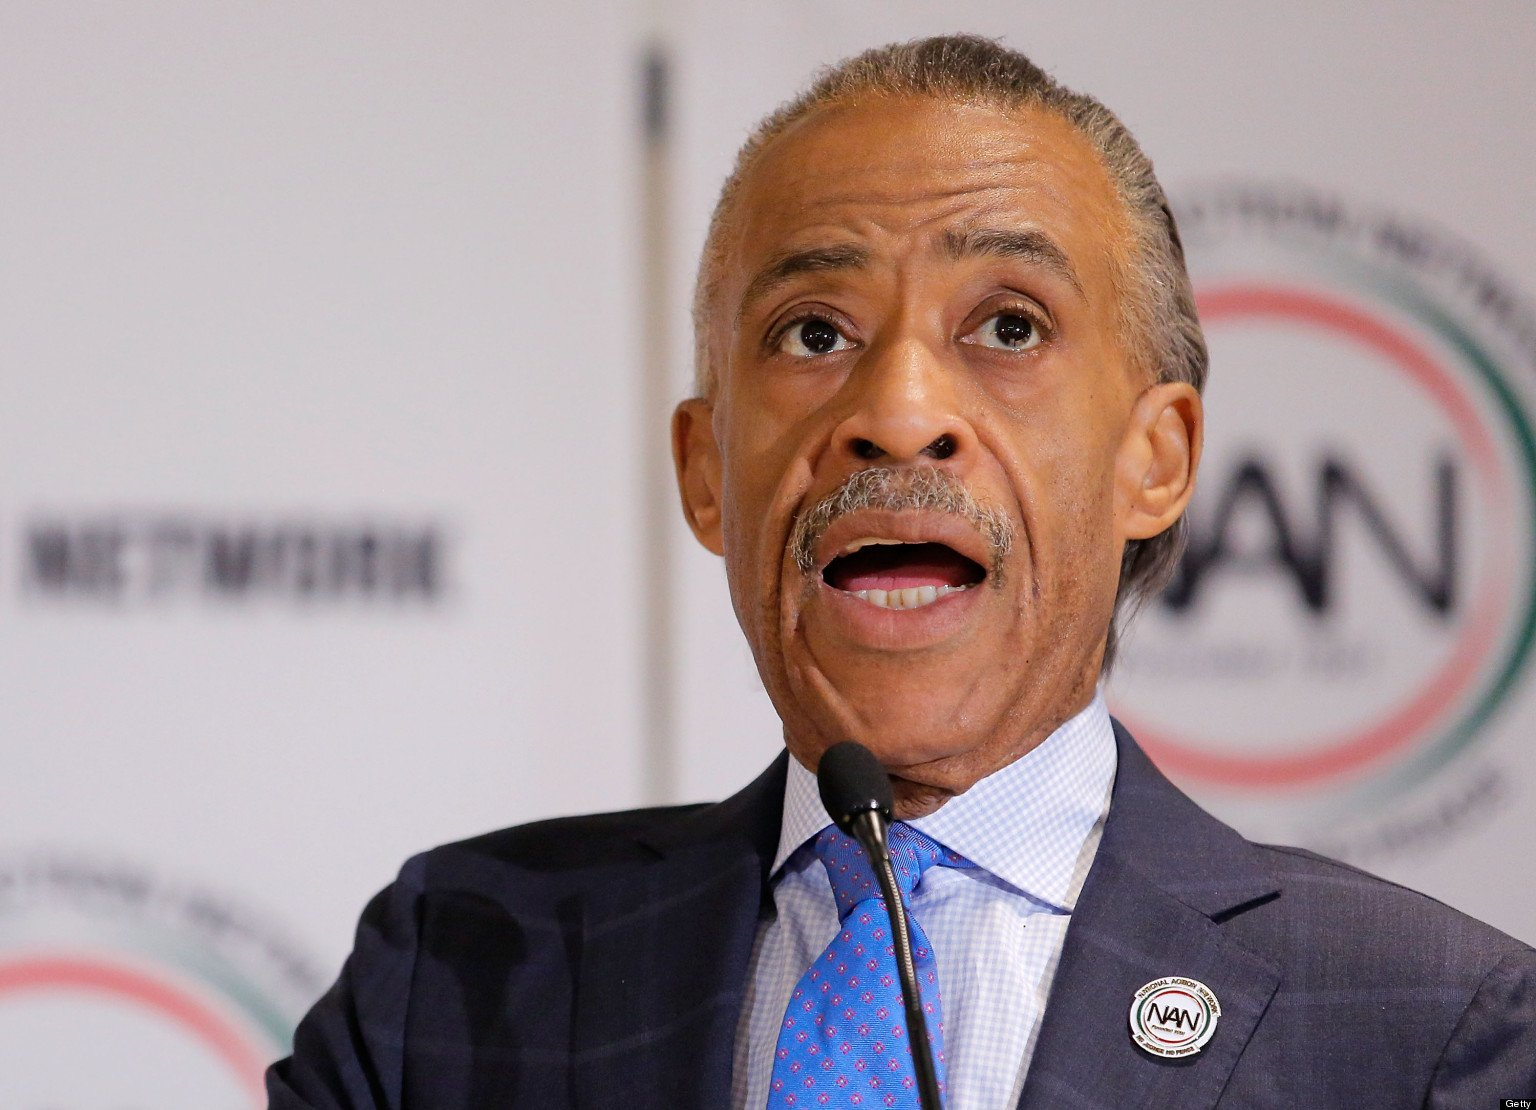 Al Sharptons halfbrother charged with murder  day after leading antigun protest